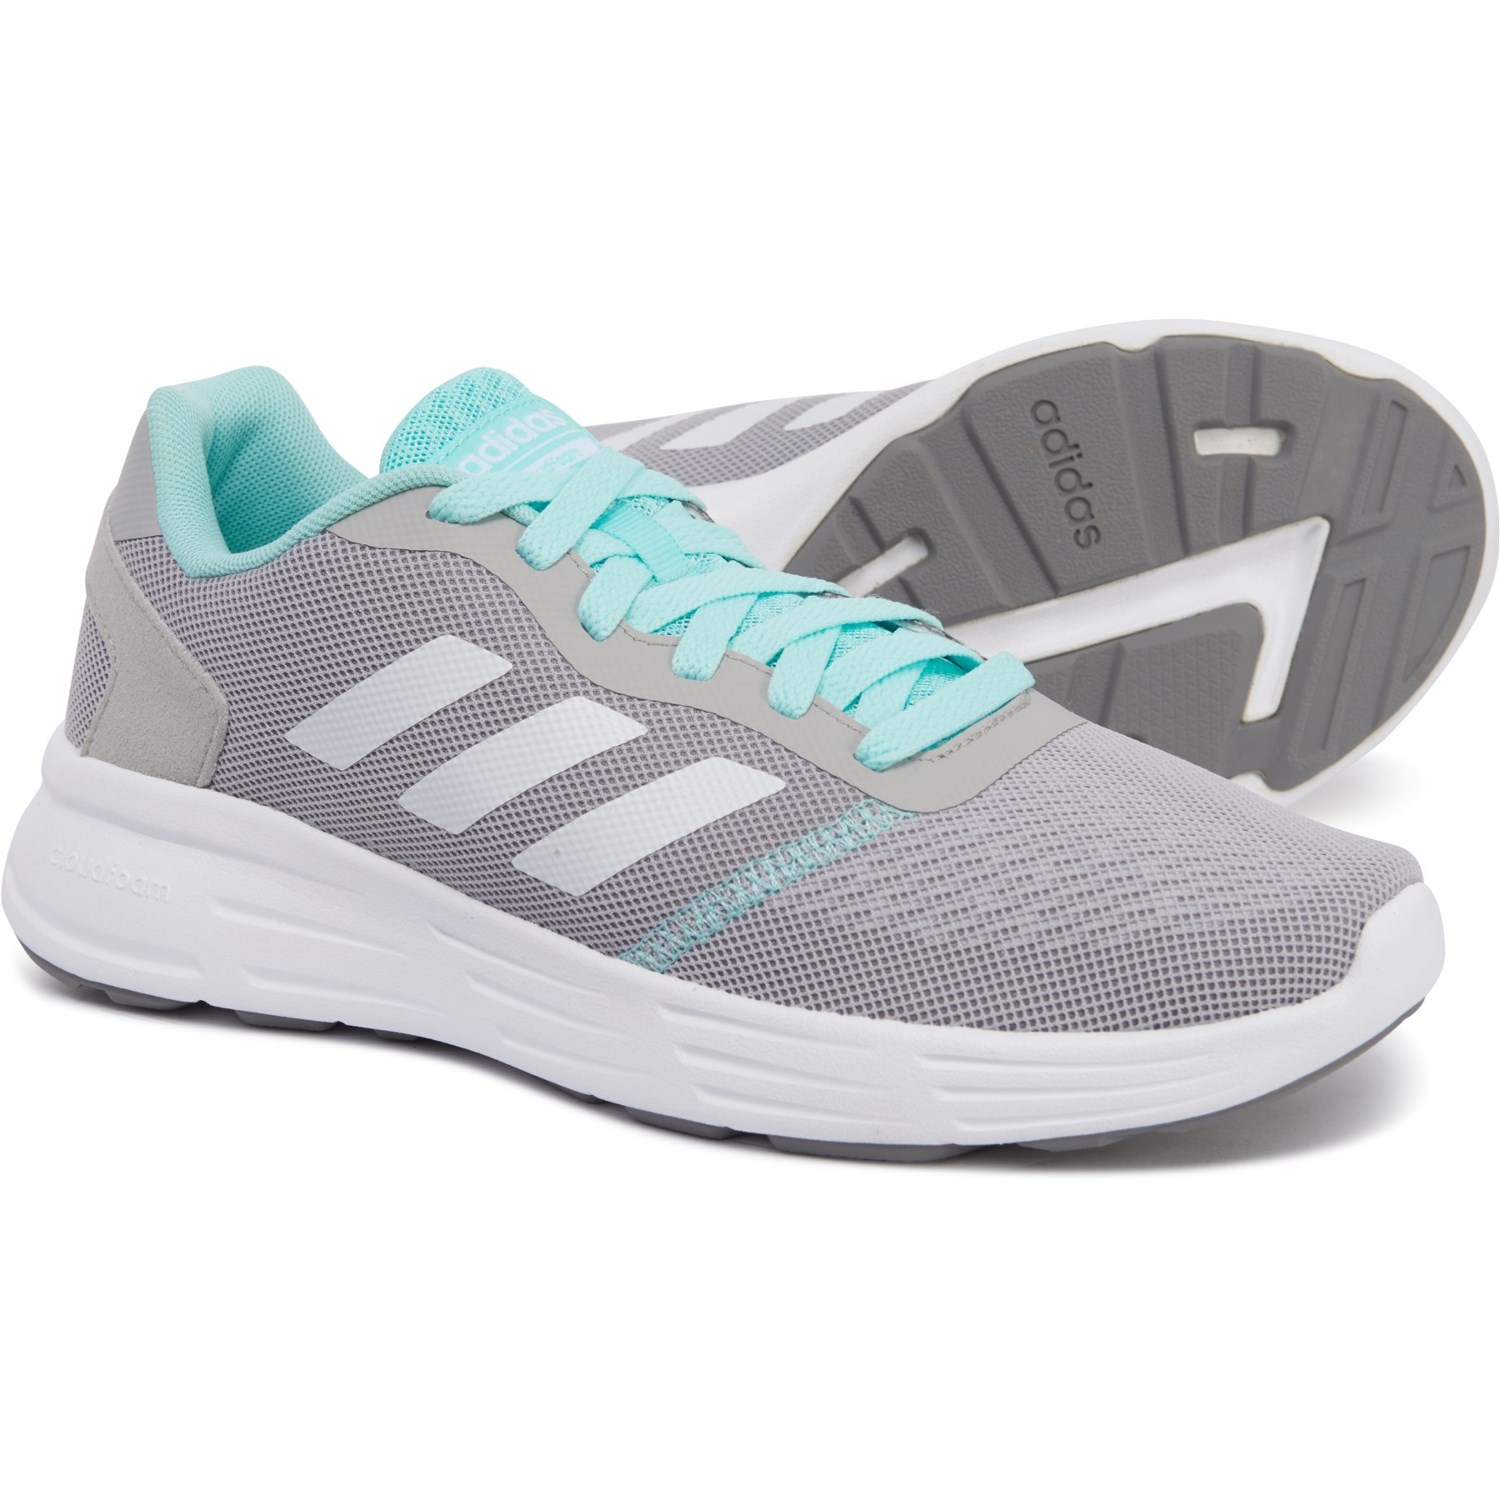 clase Enjuiciar Tercero  adidas Cloudfoam® Revolver Running Shoes (For Women) - Save 33%